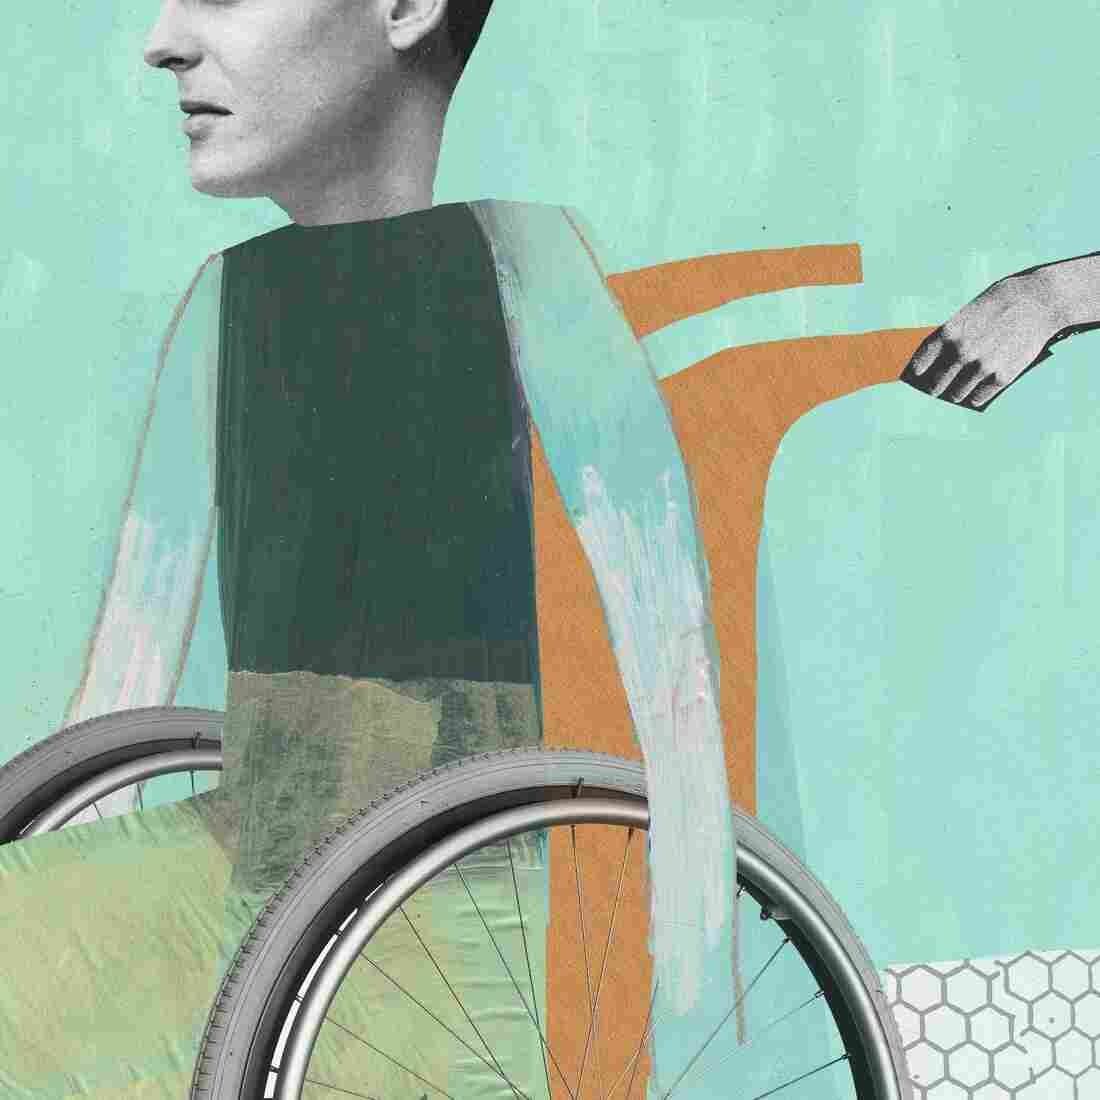 Doctors' Ignorance Is A Barrier To Care For Disabled